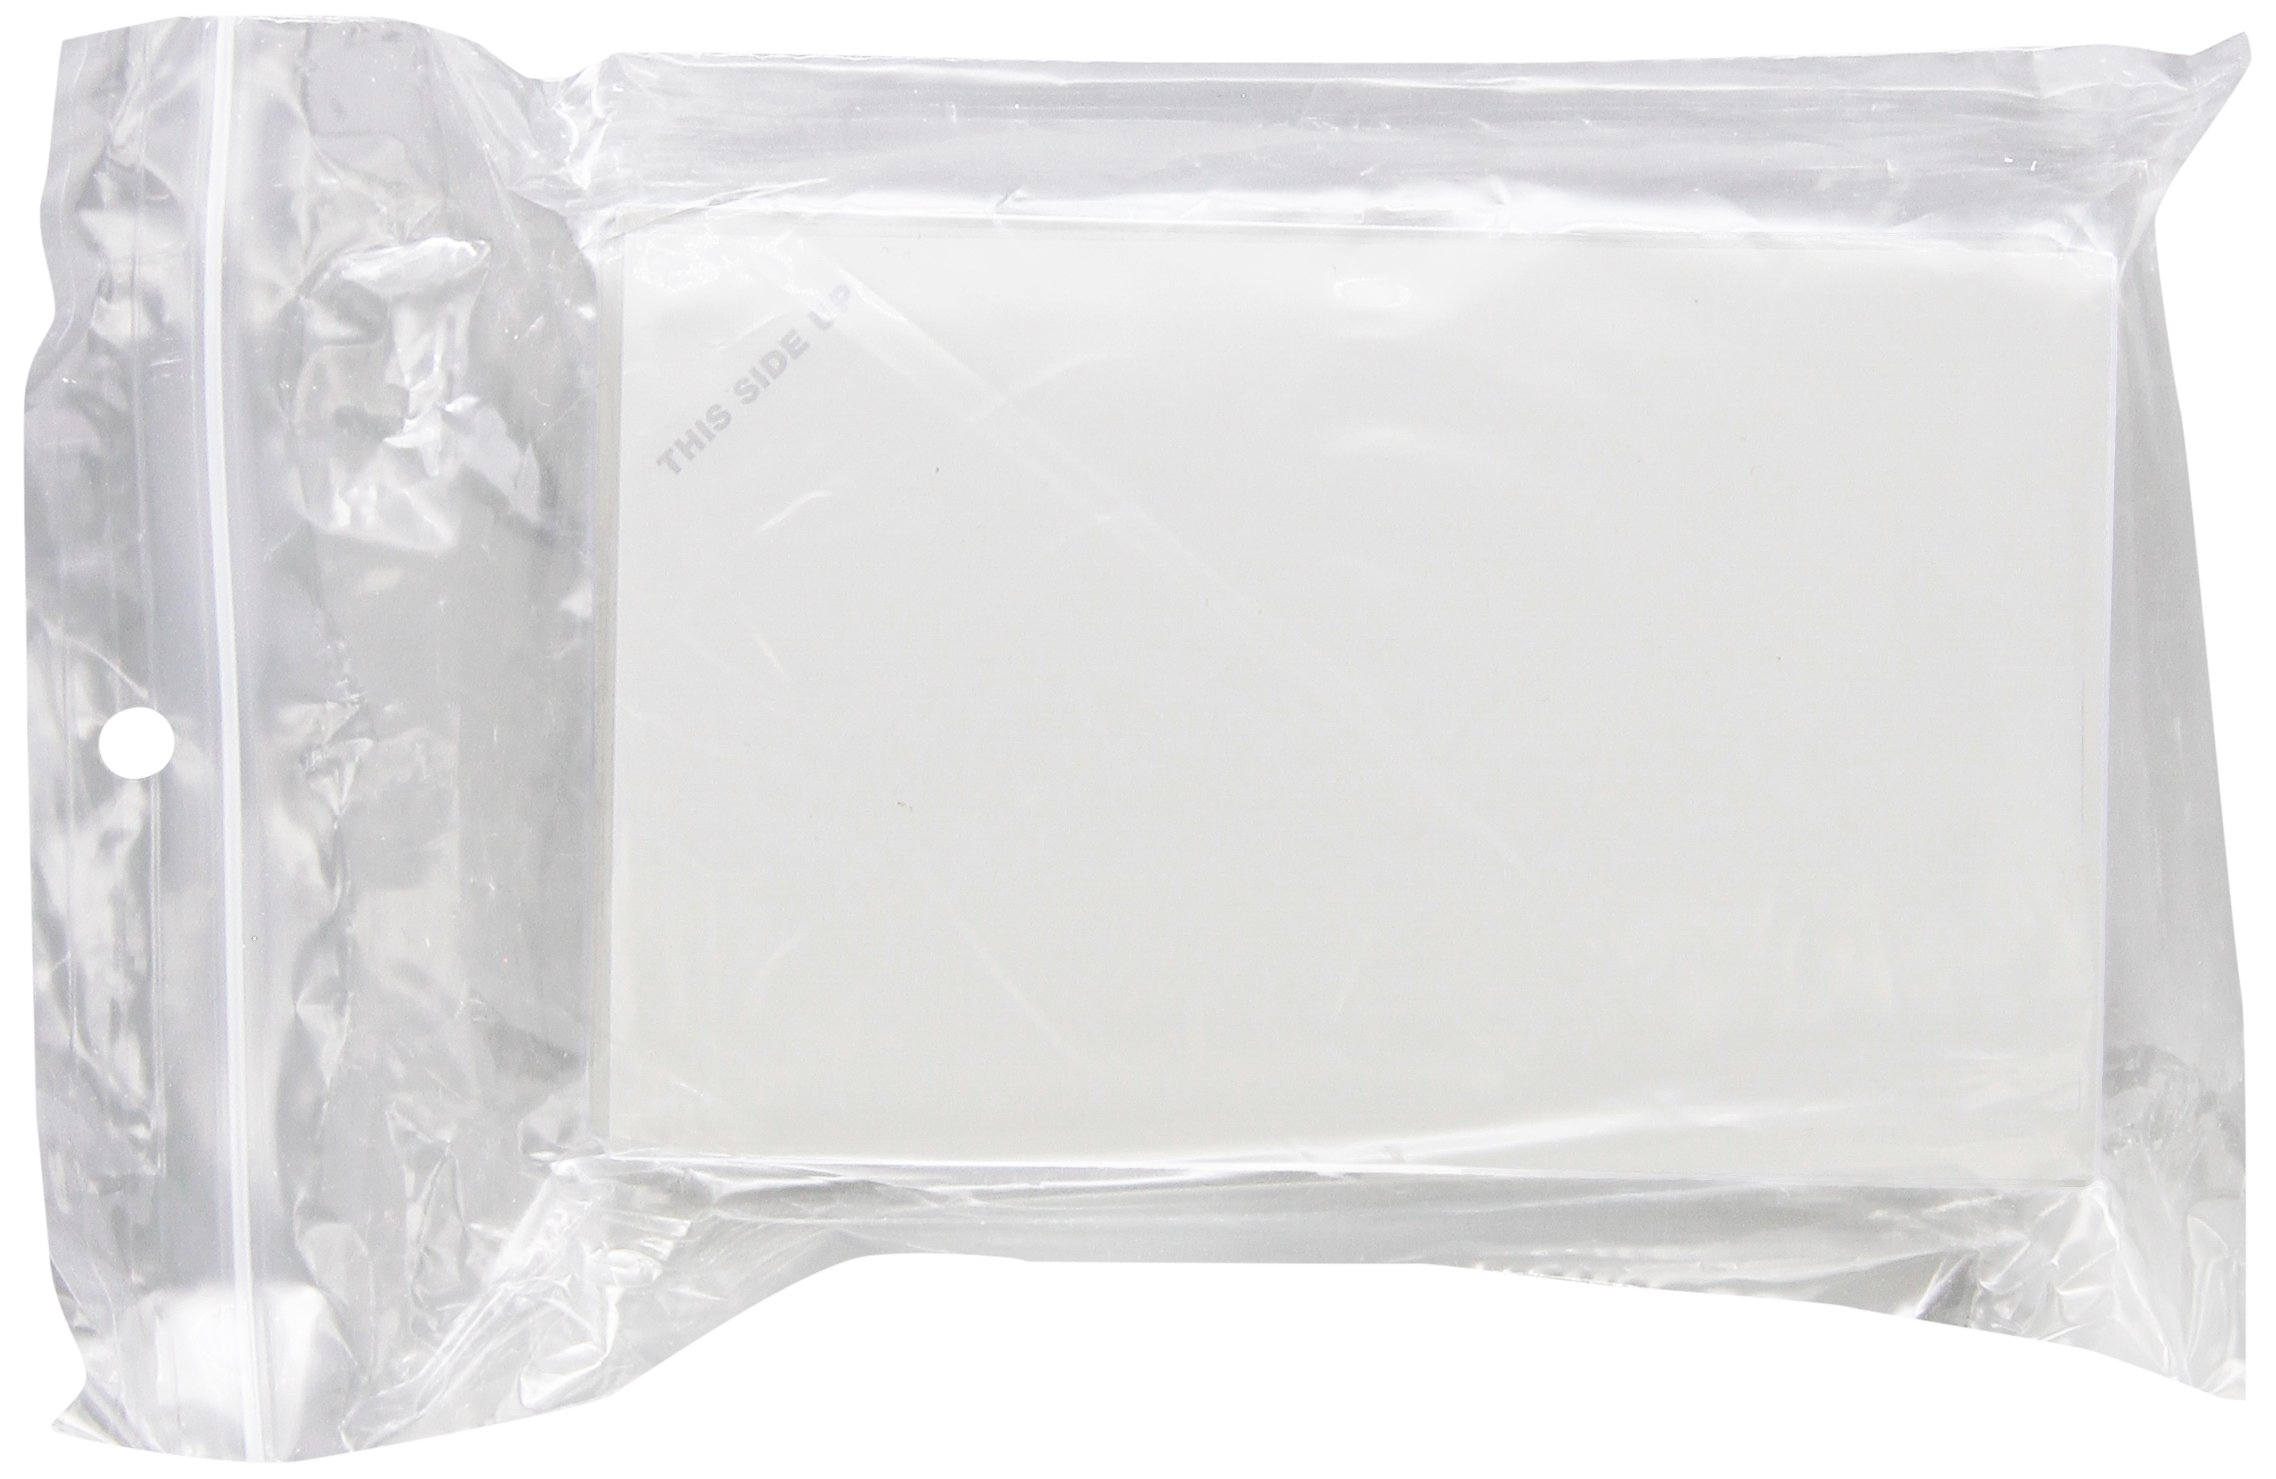 Axygen PlateMax MF-300 Litto/Ethylene/Vinyl Heat Sealing Film with Paper Backing for General Storage and PCR Applications, 85µm Thick, 127.2mm Length, 79.5mm Width, Non-Sterile (Case of 500)